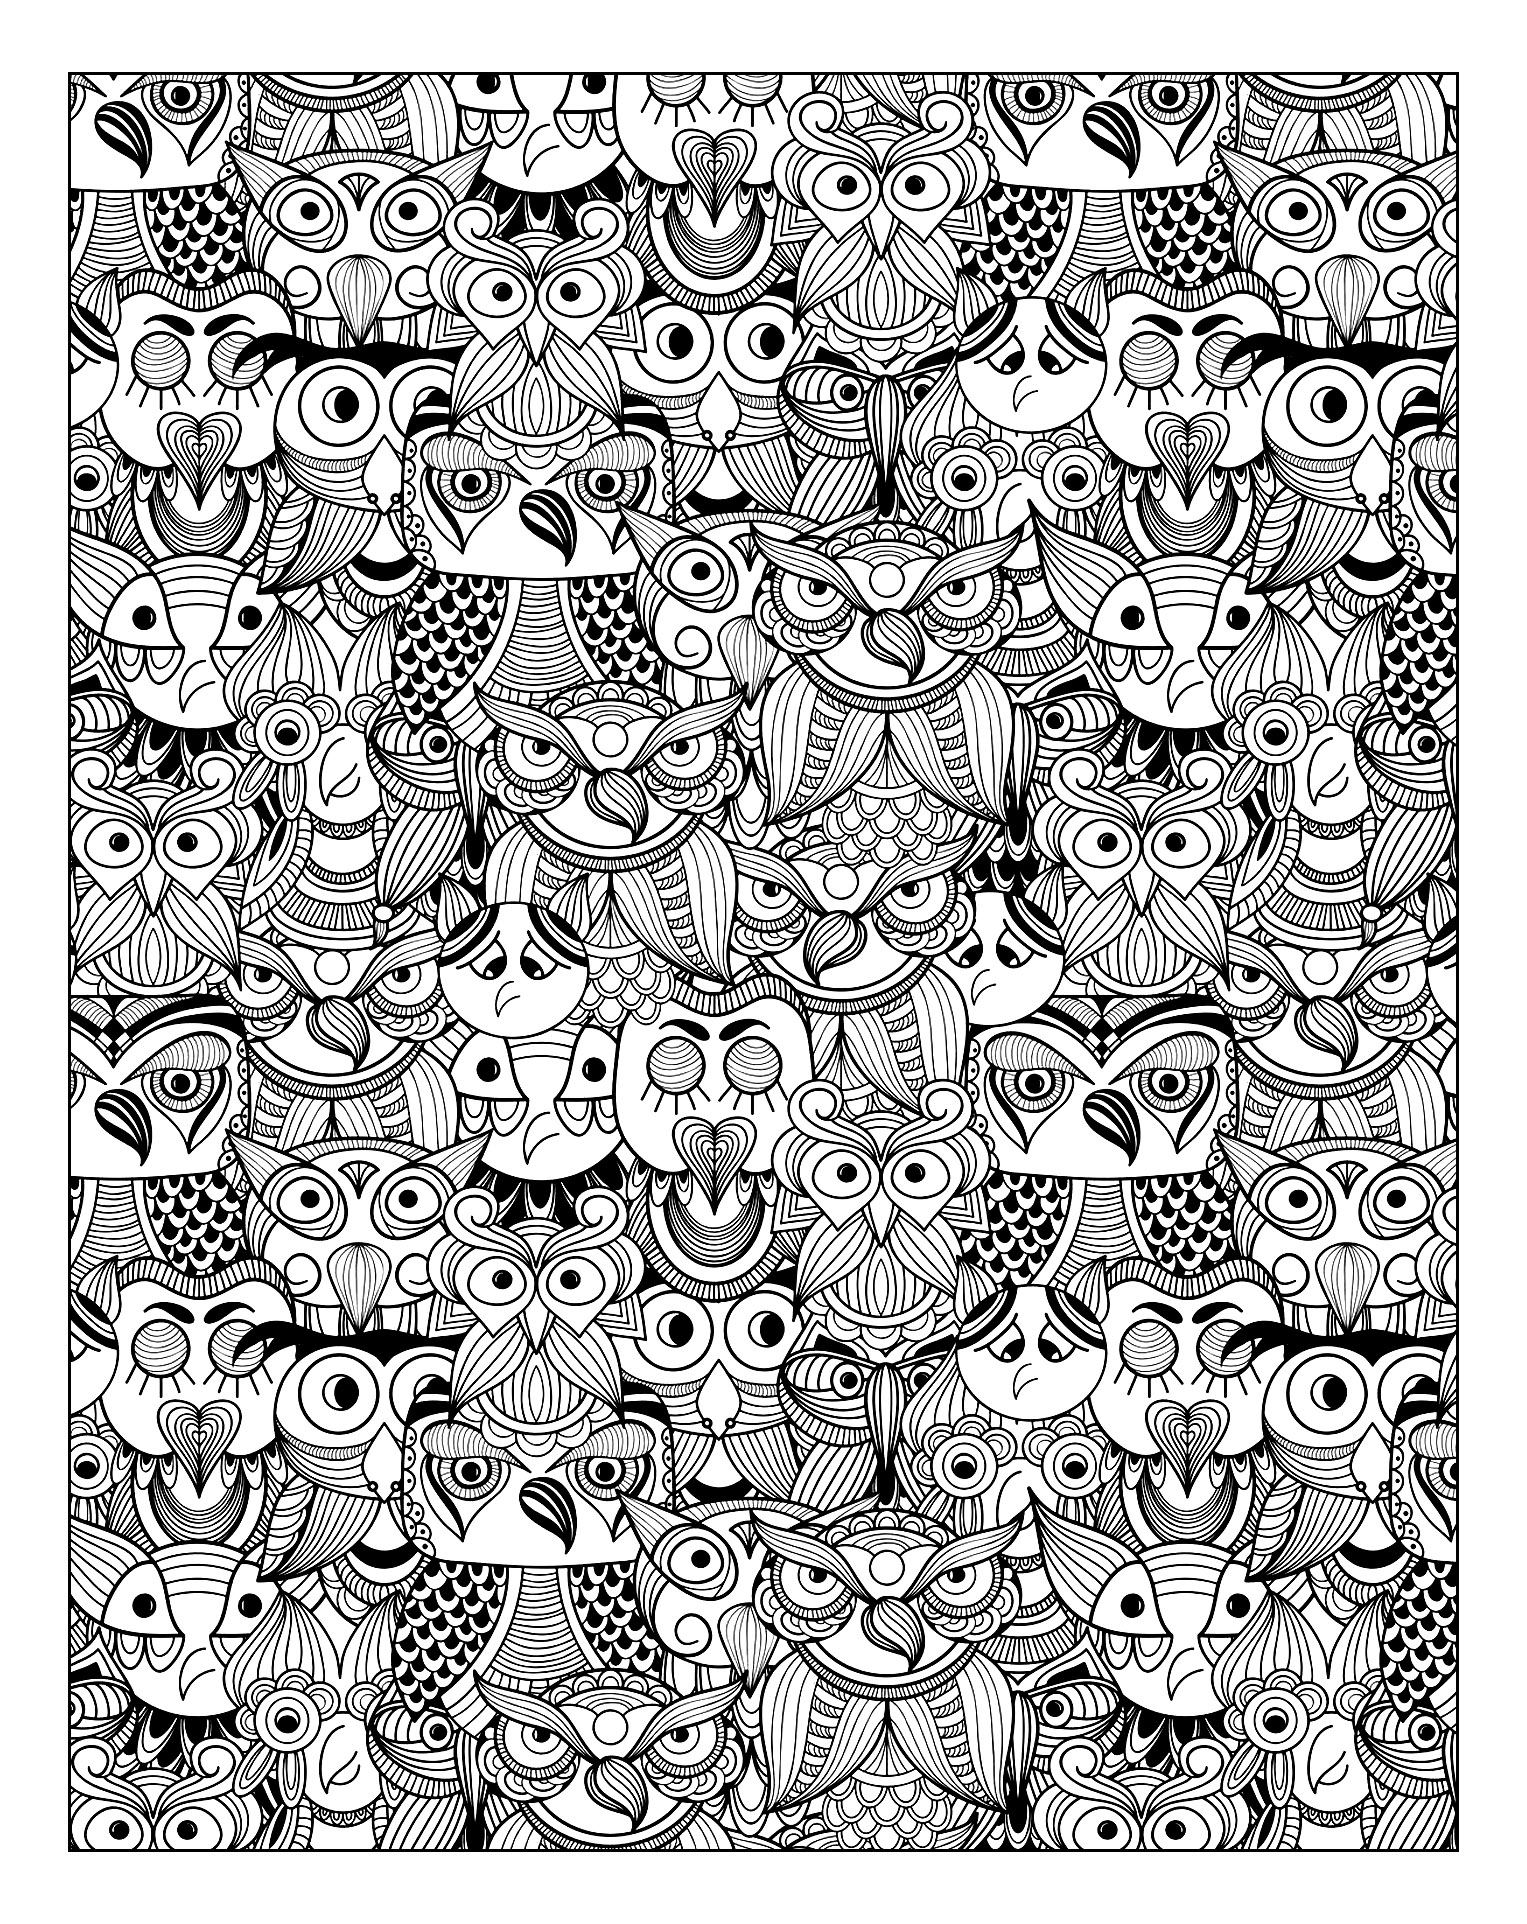 Many owls in this coloring page